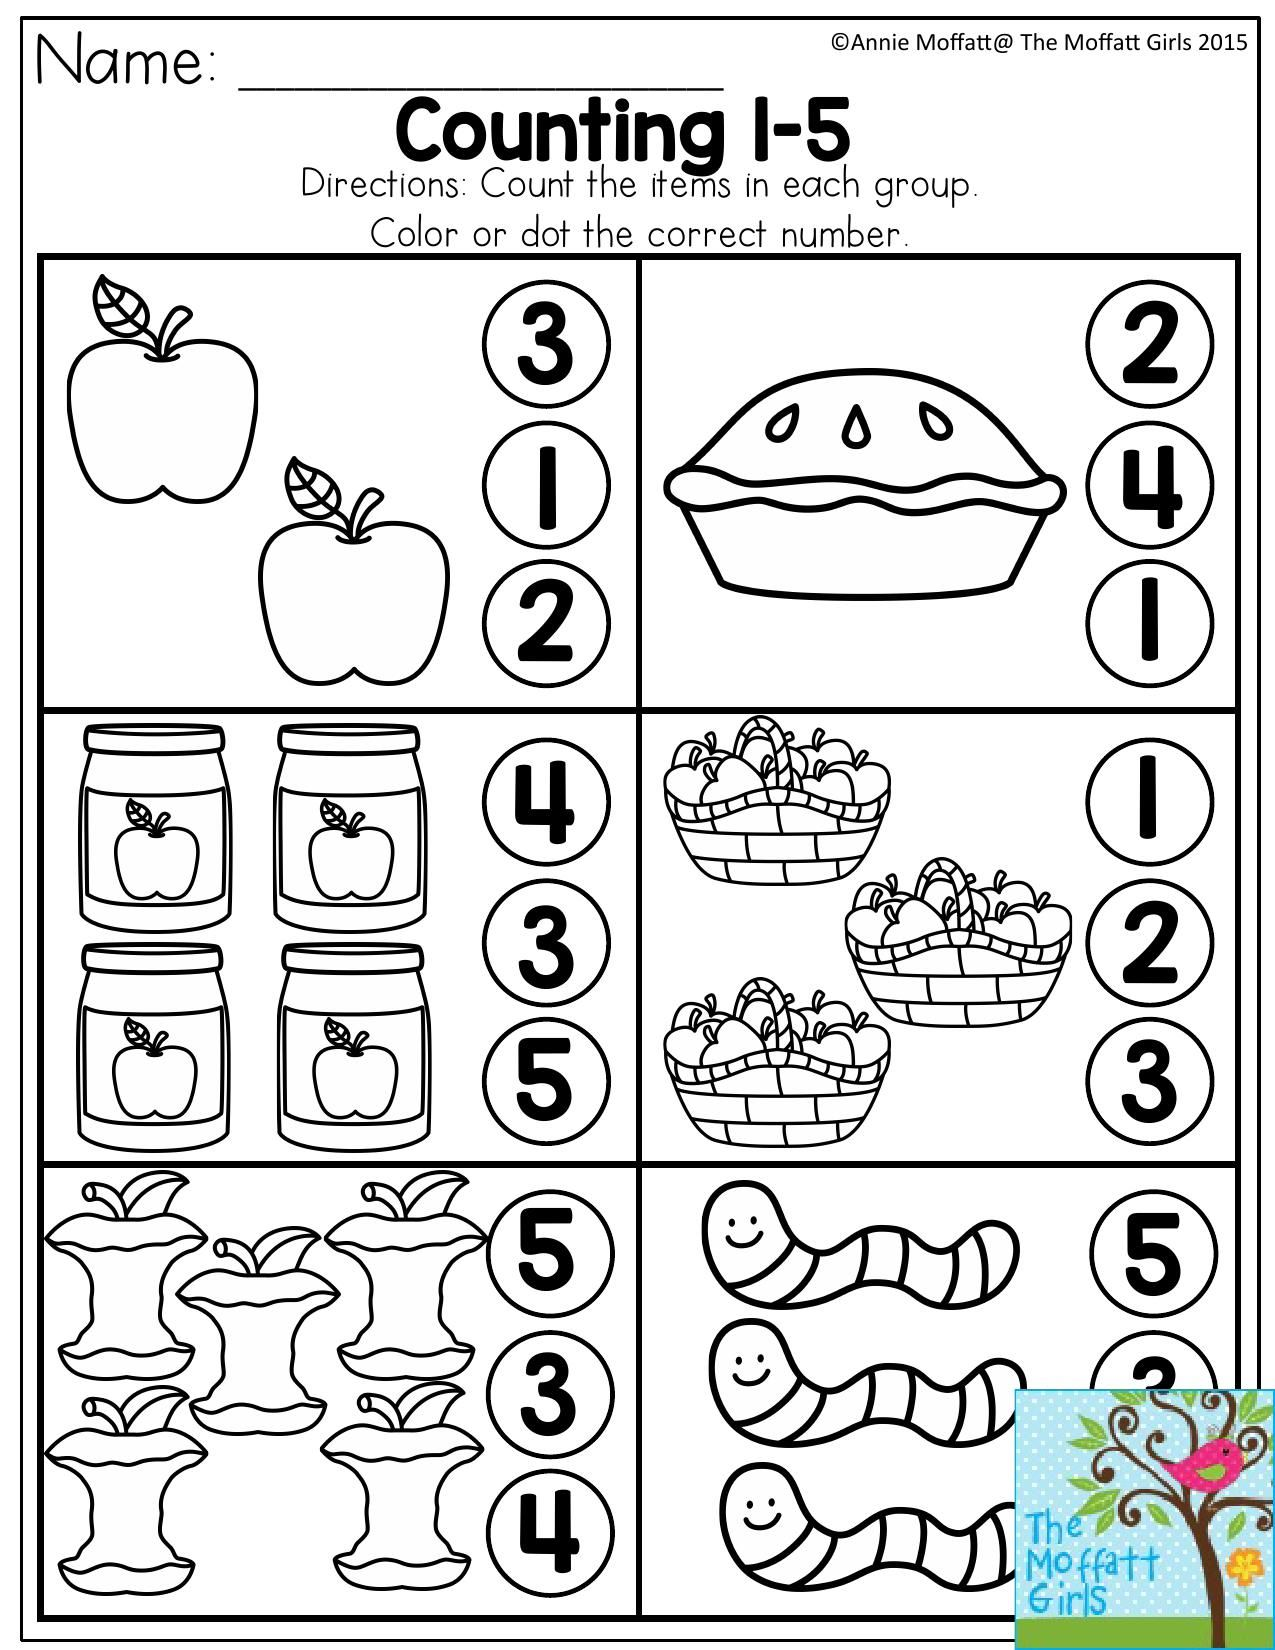 Counting 1 5 Count The Items In Each Group And Dot Or Color The Correct Number There Are Tons